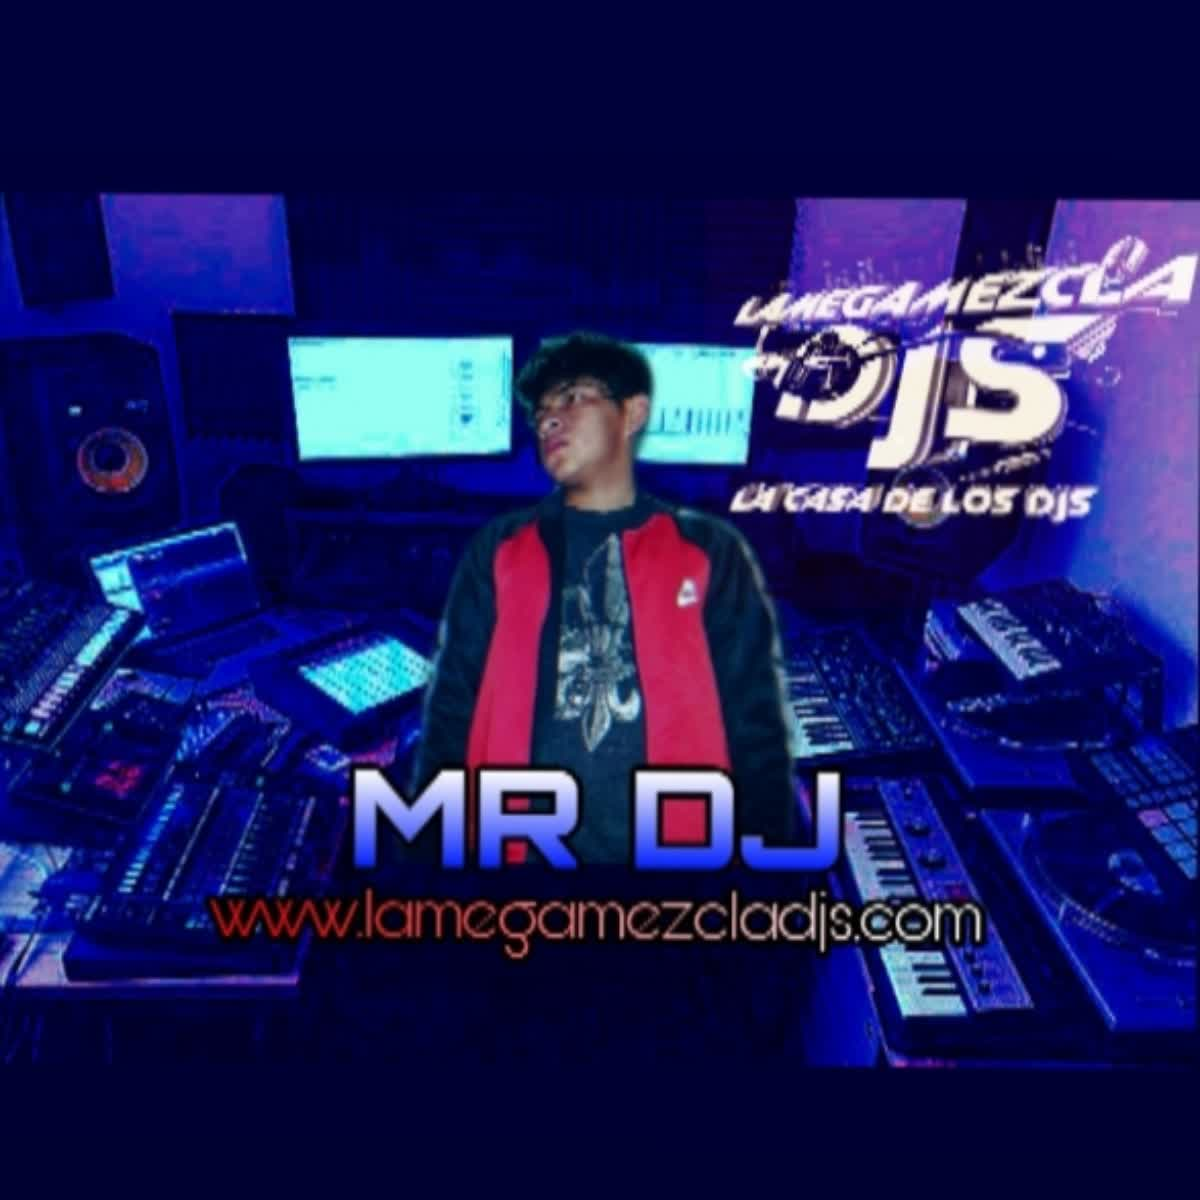 Halloween - MR DJ - Guaracha House Remix - 130BPM